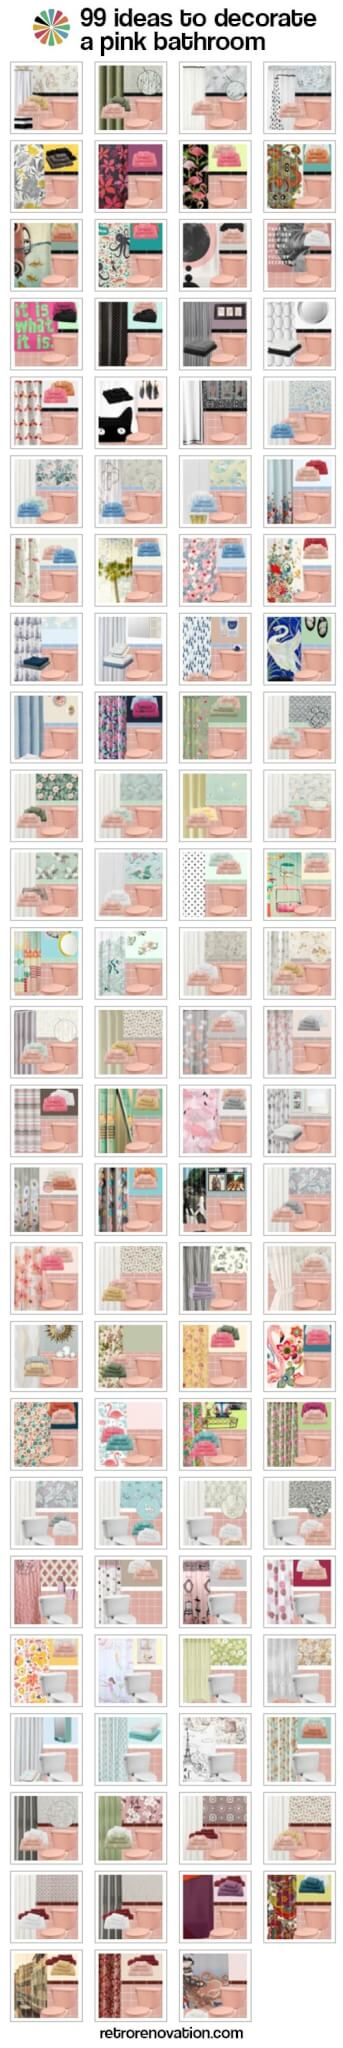 99-ideas-to-decorate-a-pink-bathroom-long